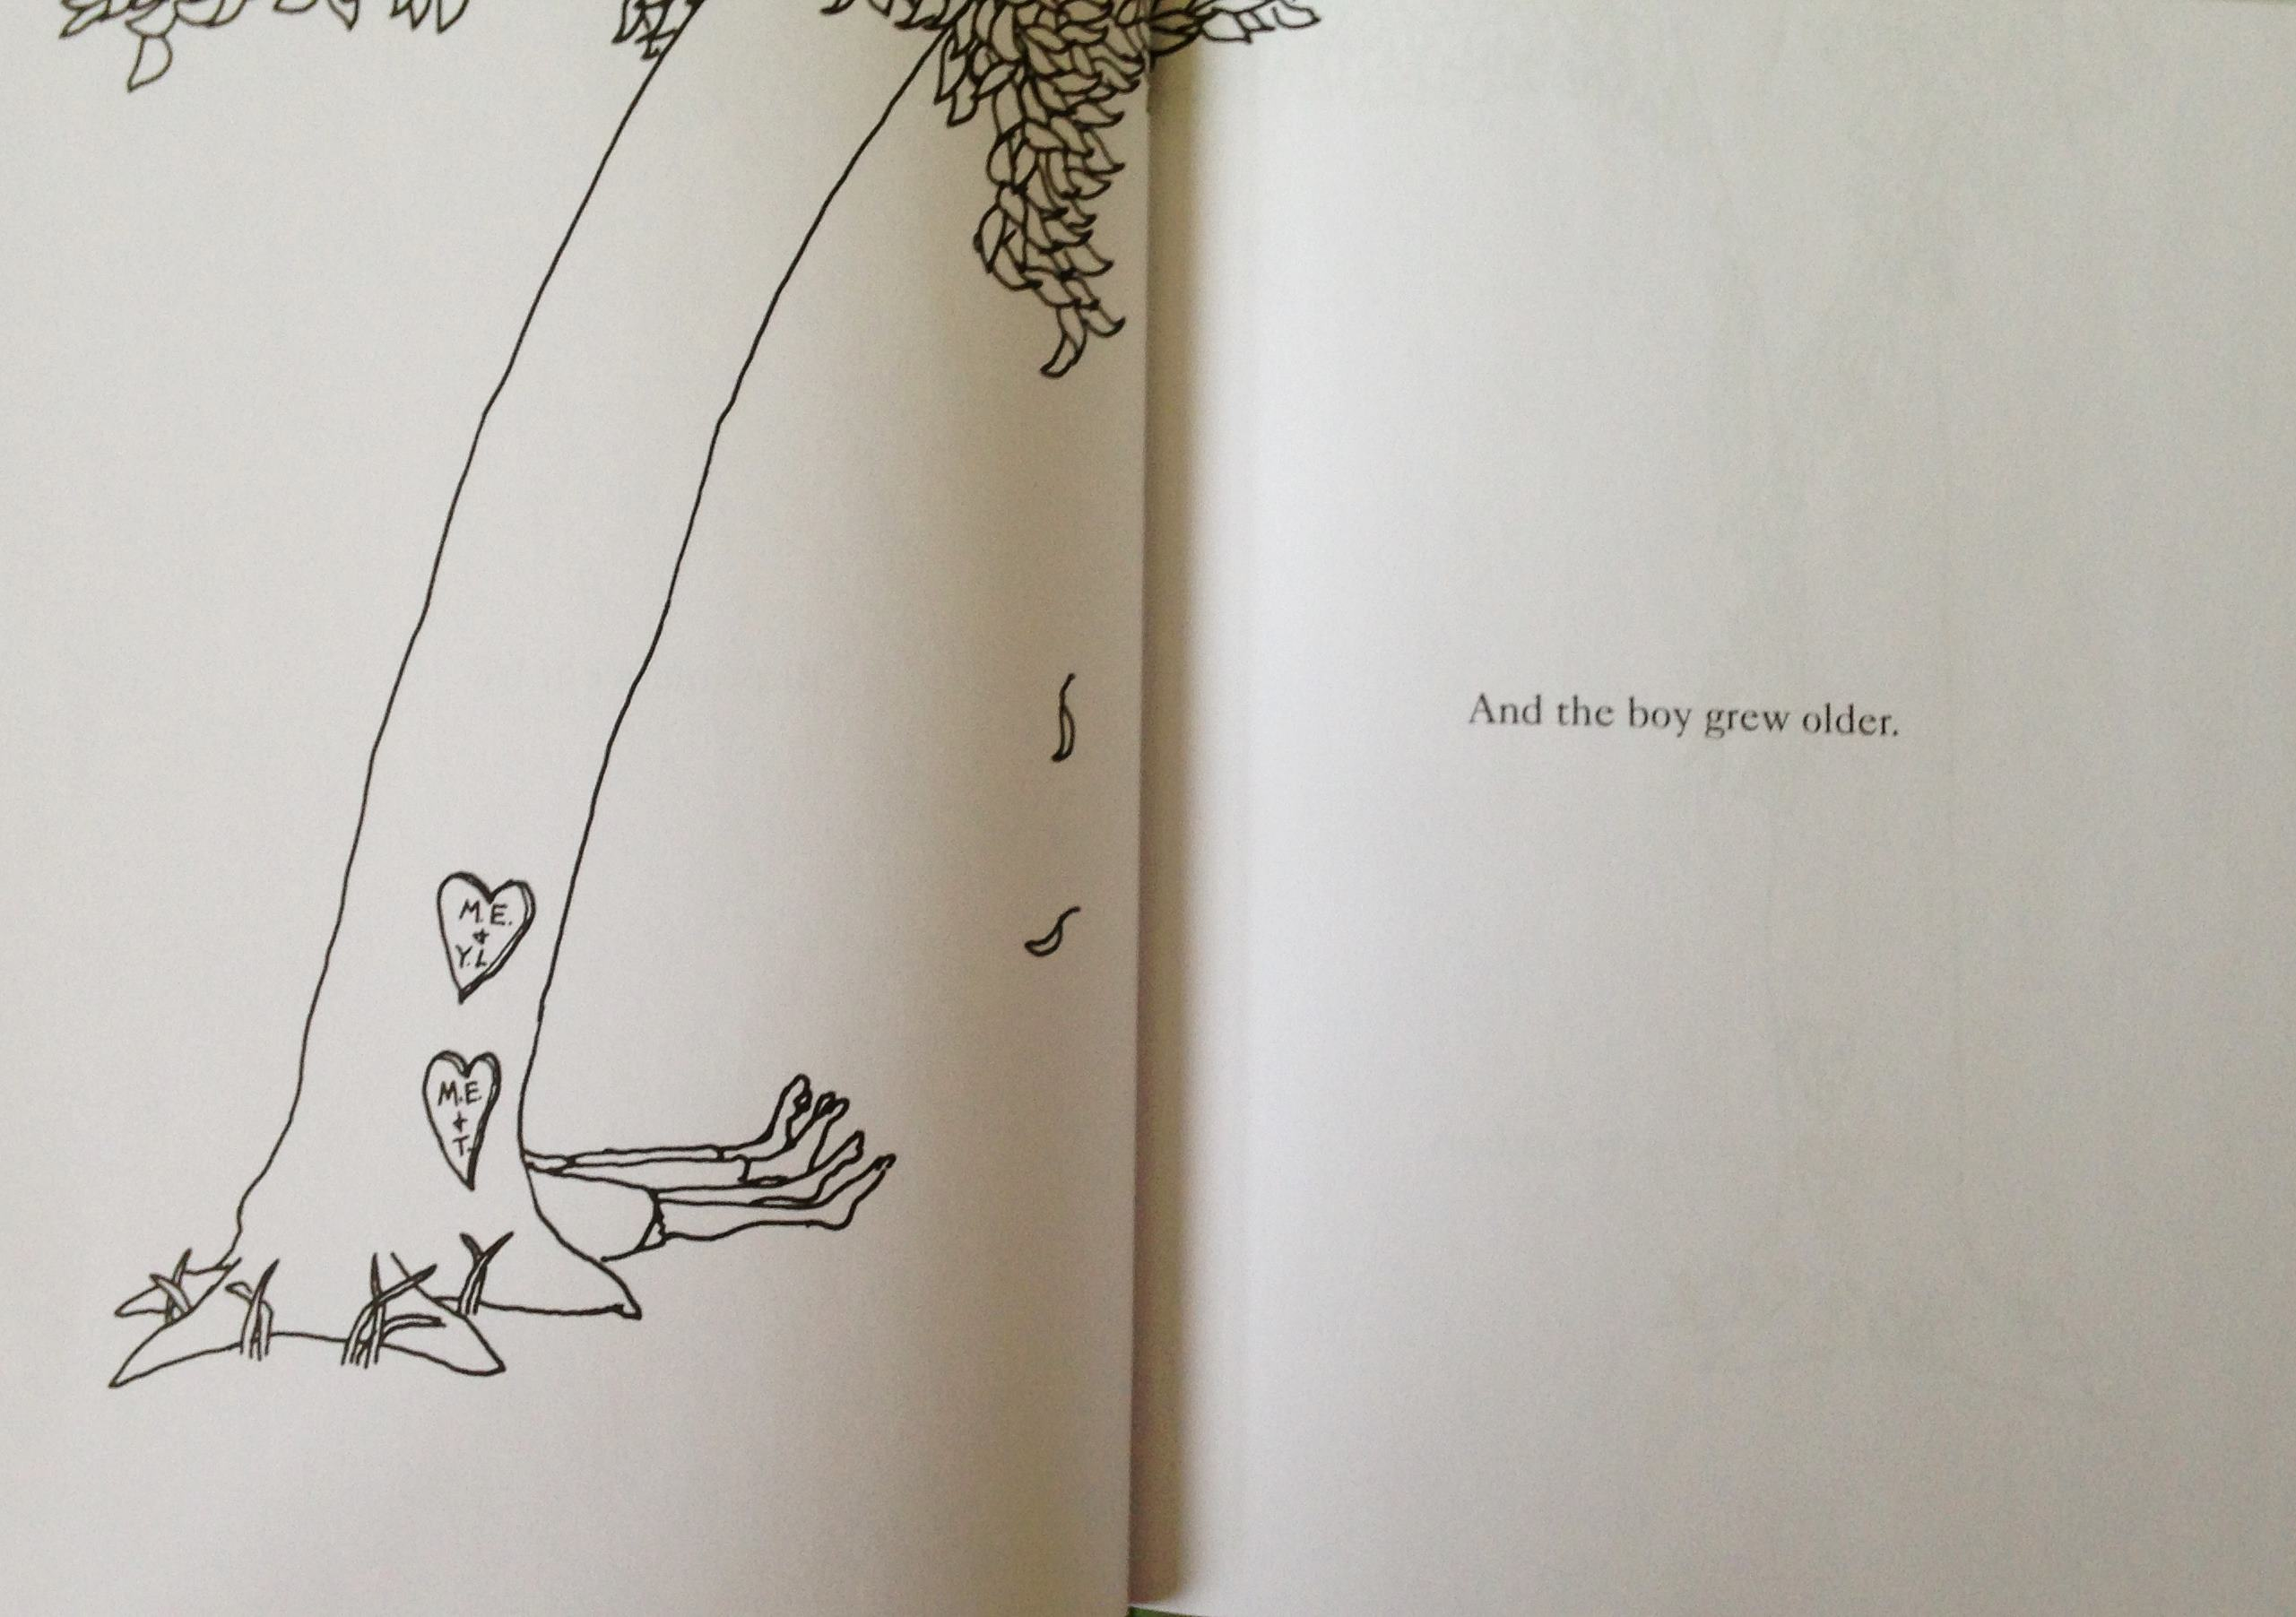 Cömert Ağaç -Giving Tree by Shel Silverstein (15)